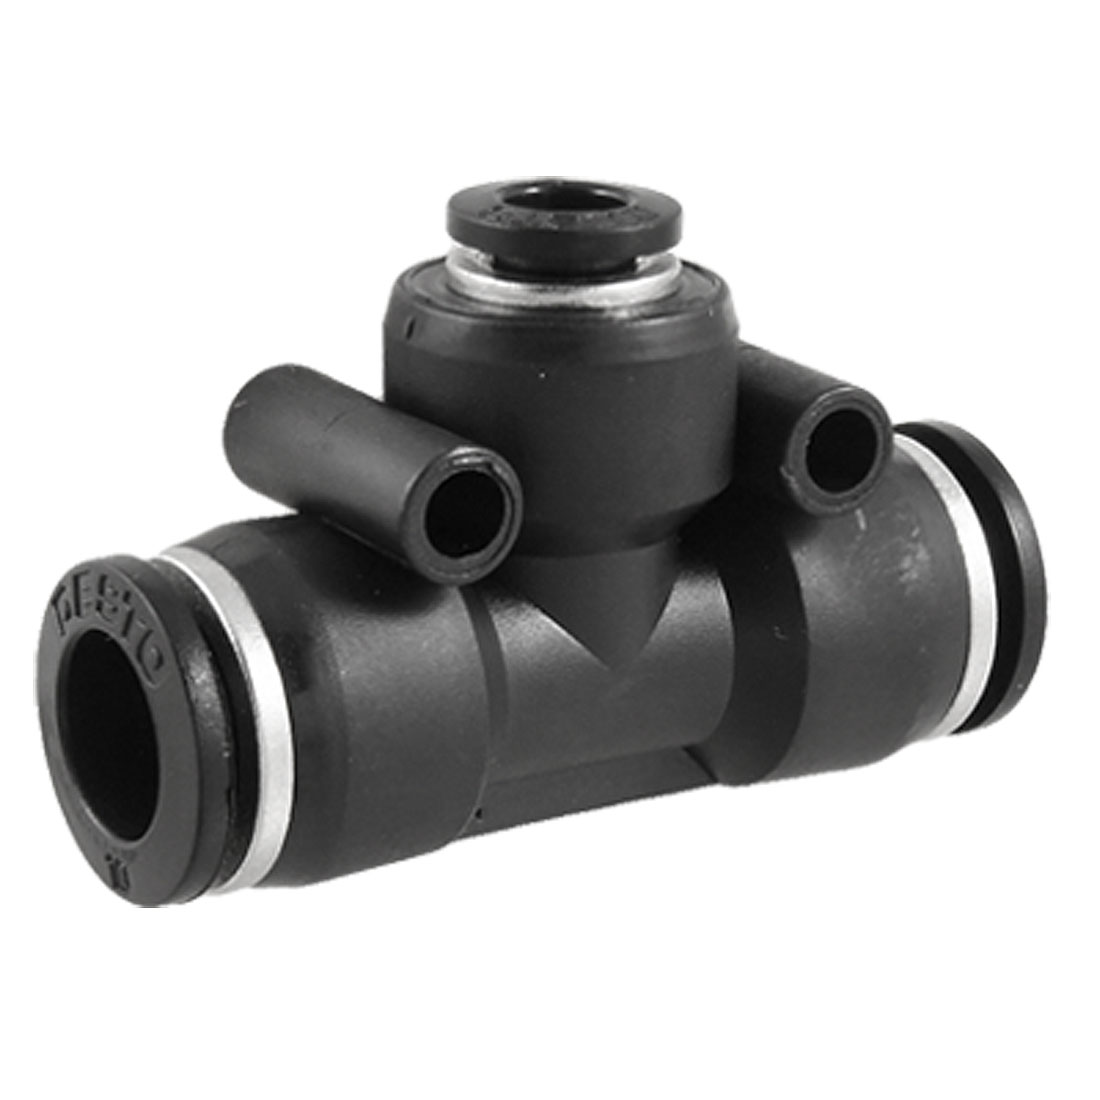 8mm to 12mm T Connector Plastic One Touch Push In Quick Fittings Black